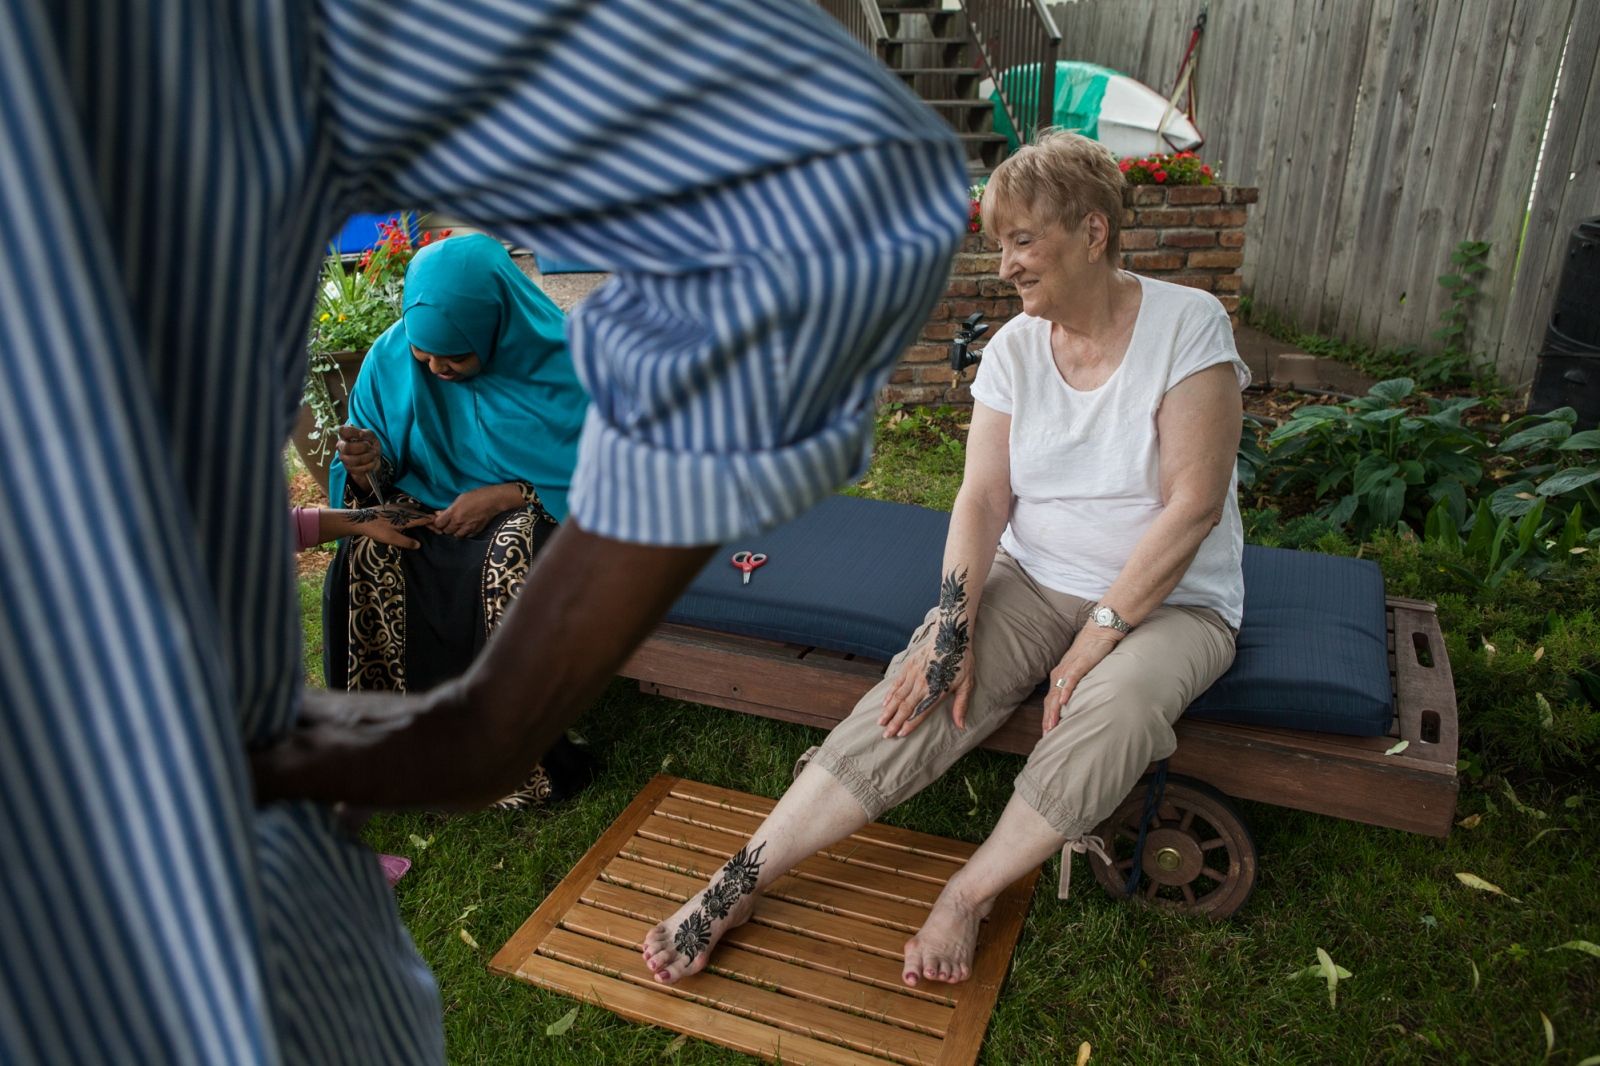 Sharon Albee waits for the henna temporary tattoos on her hand to dry. Henna is a popular decoration Somalis adorn themselves with for special events like weddings or, in this case, Iftar dinner.